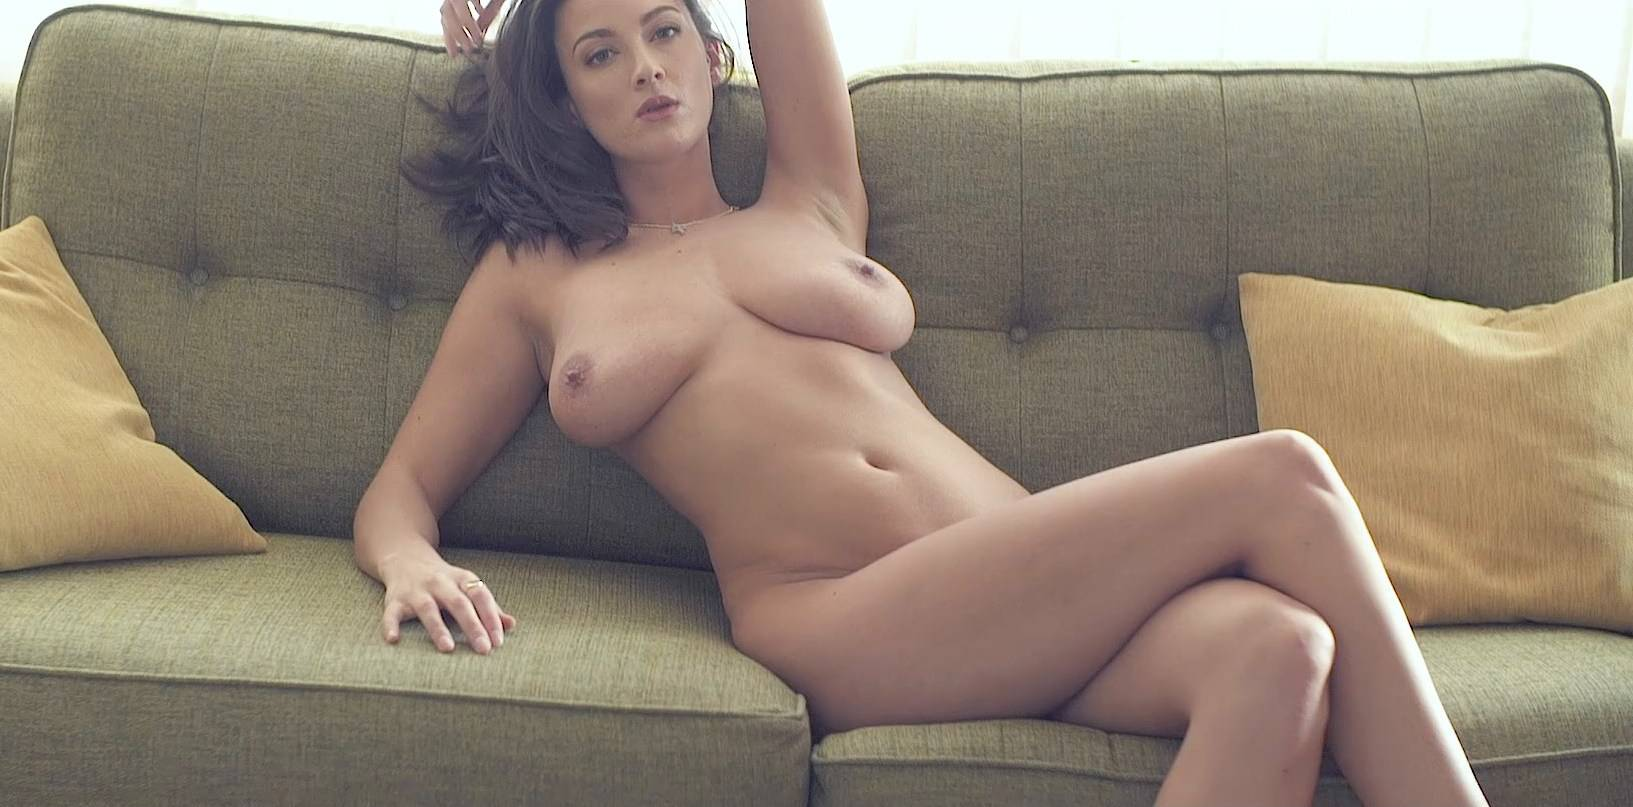 Ivy jean joi nude pics